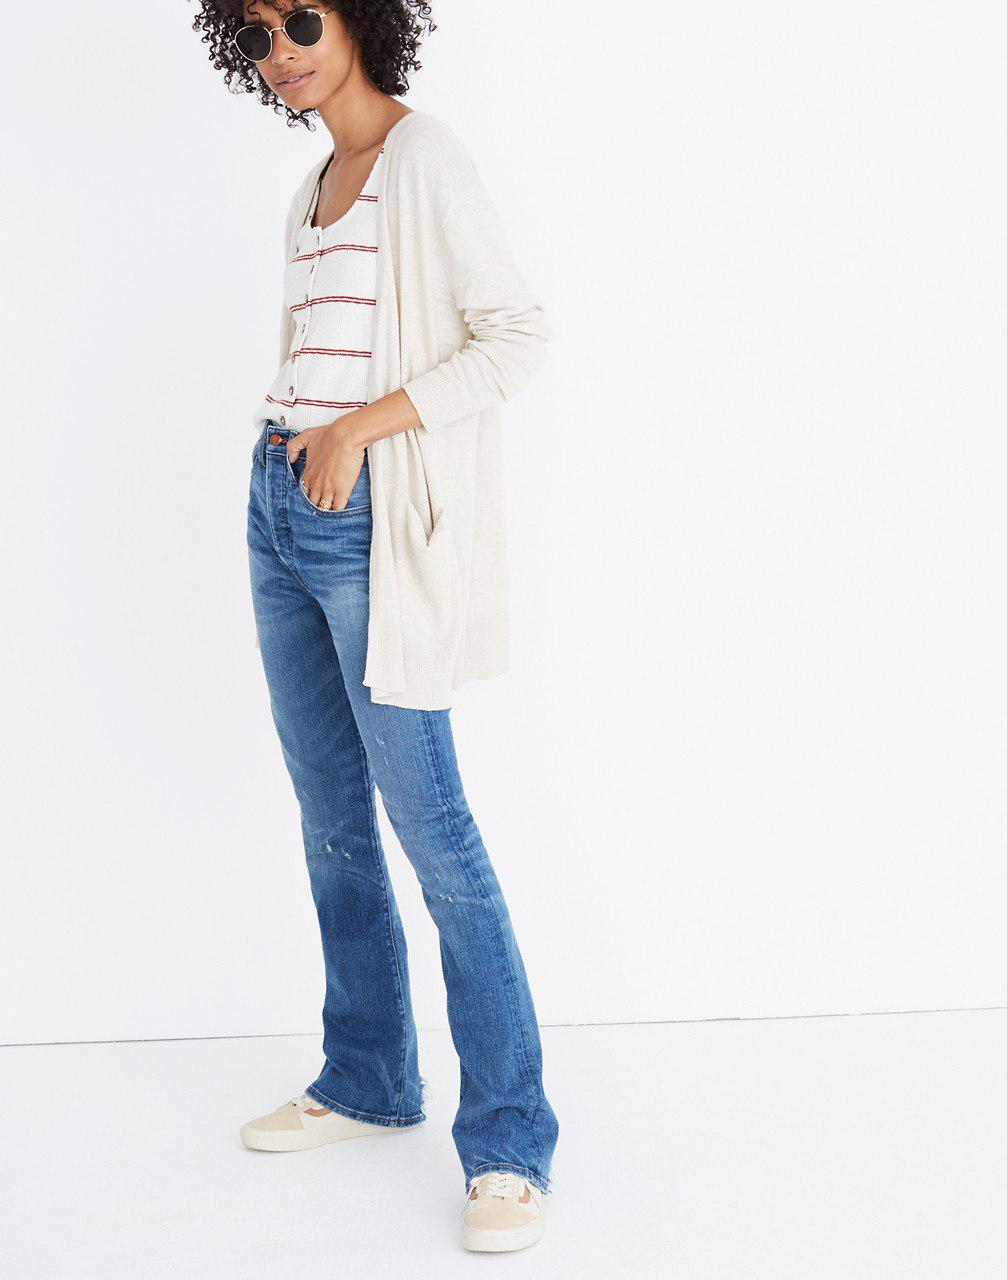 7e19b8859a6 Lyst - Madewell Summer Ryder Cardigan Sweater in Natural